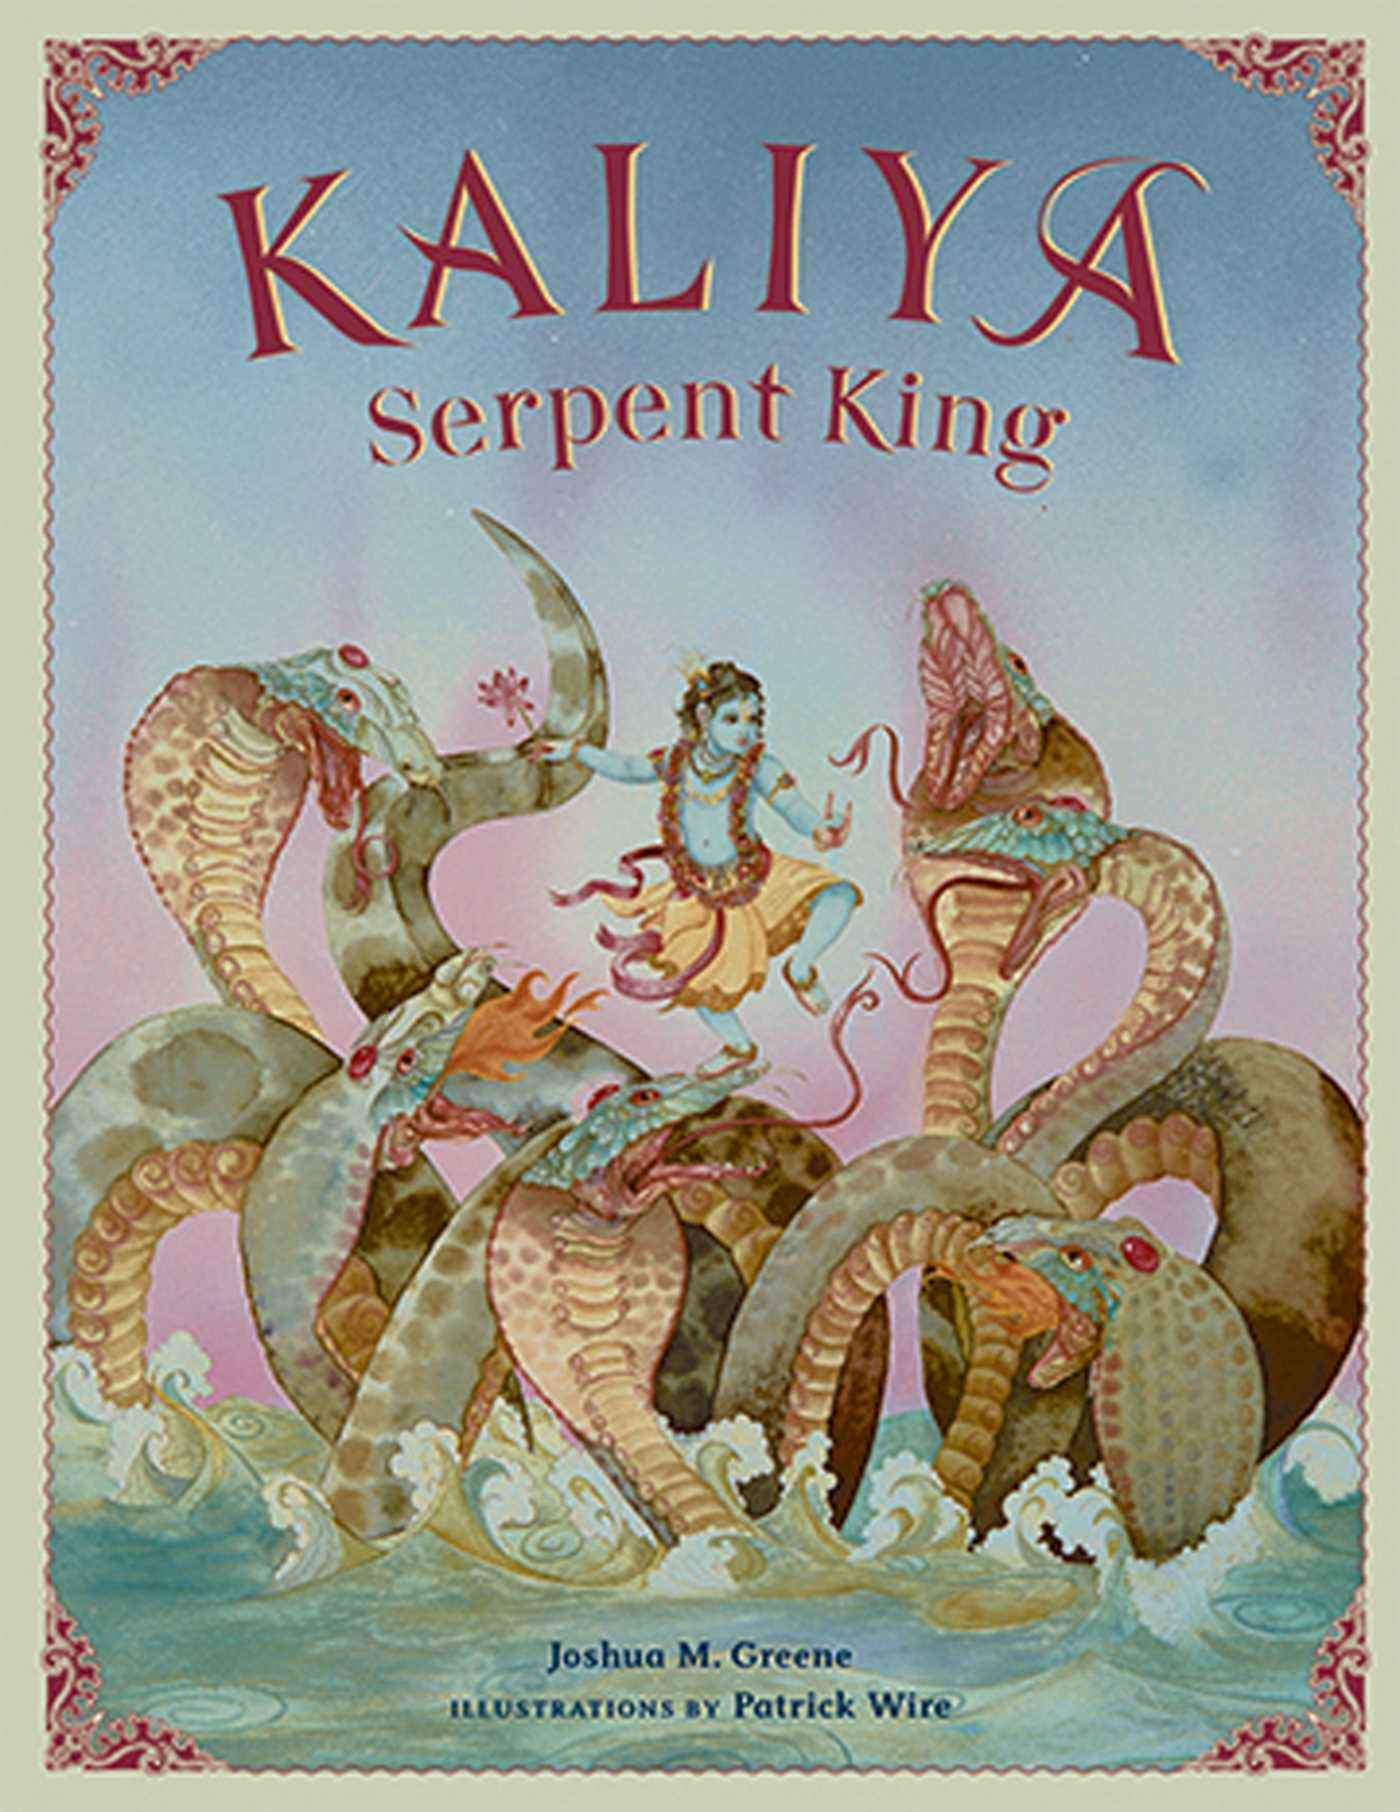 Kaliya serpent king book by joshua m greene official publisher kaliya serpent king 9781608871483 hr fandeluxe Image collections